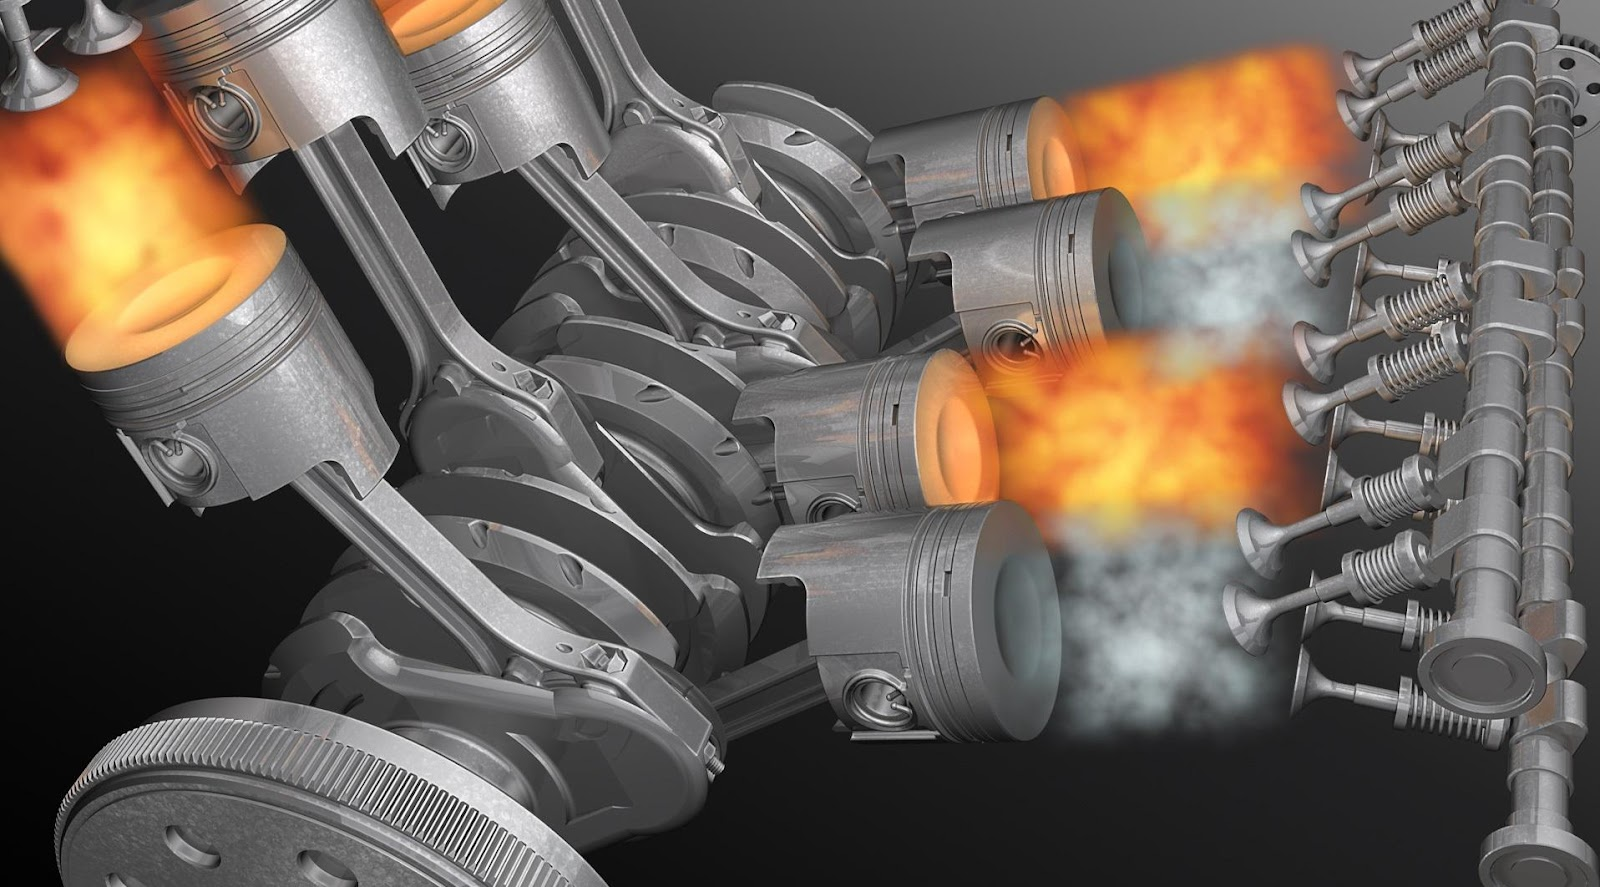 uel Efficient Internal Combustion Engine Market Witness the Growth of